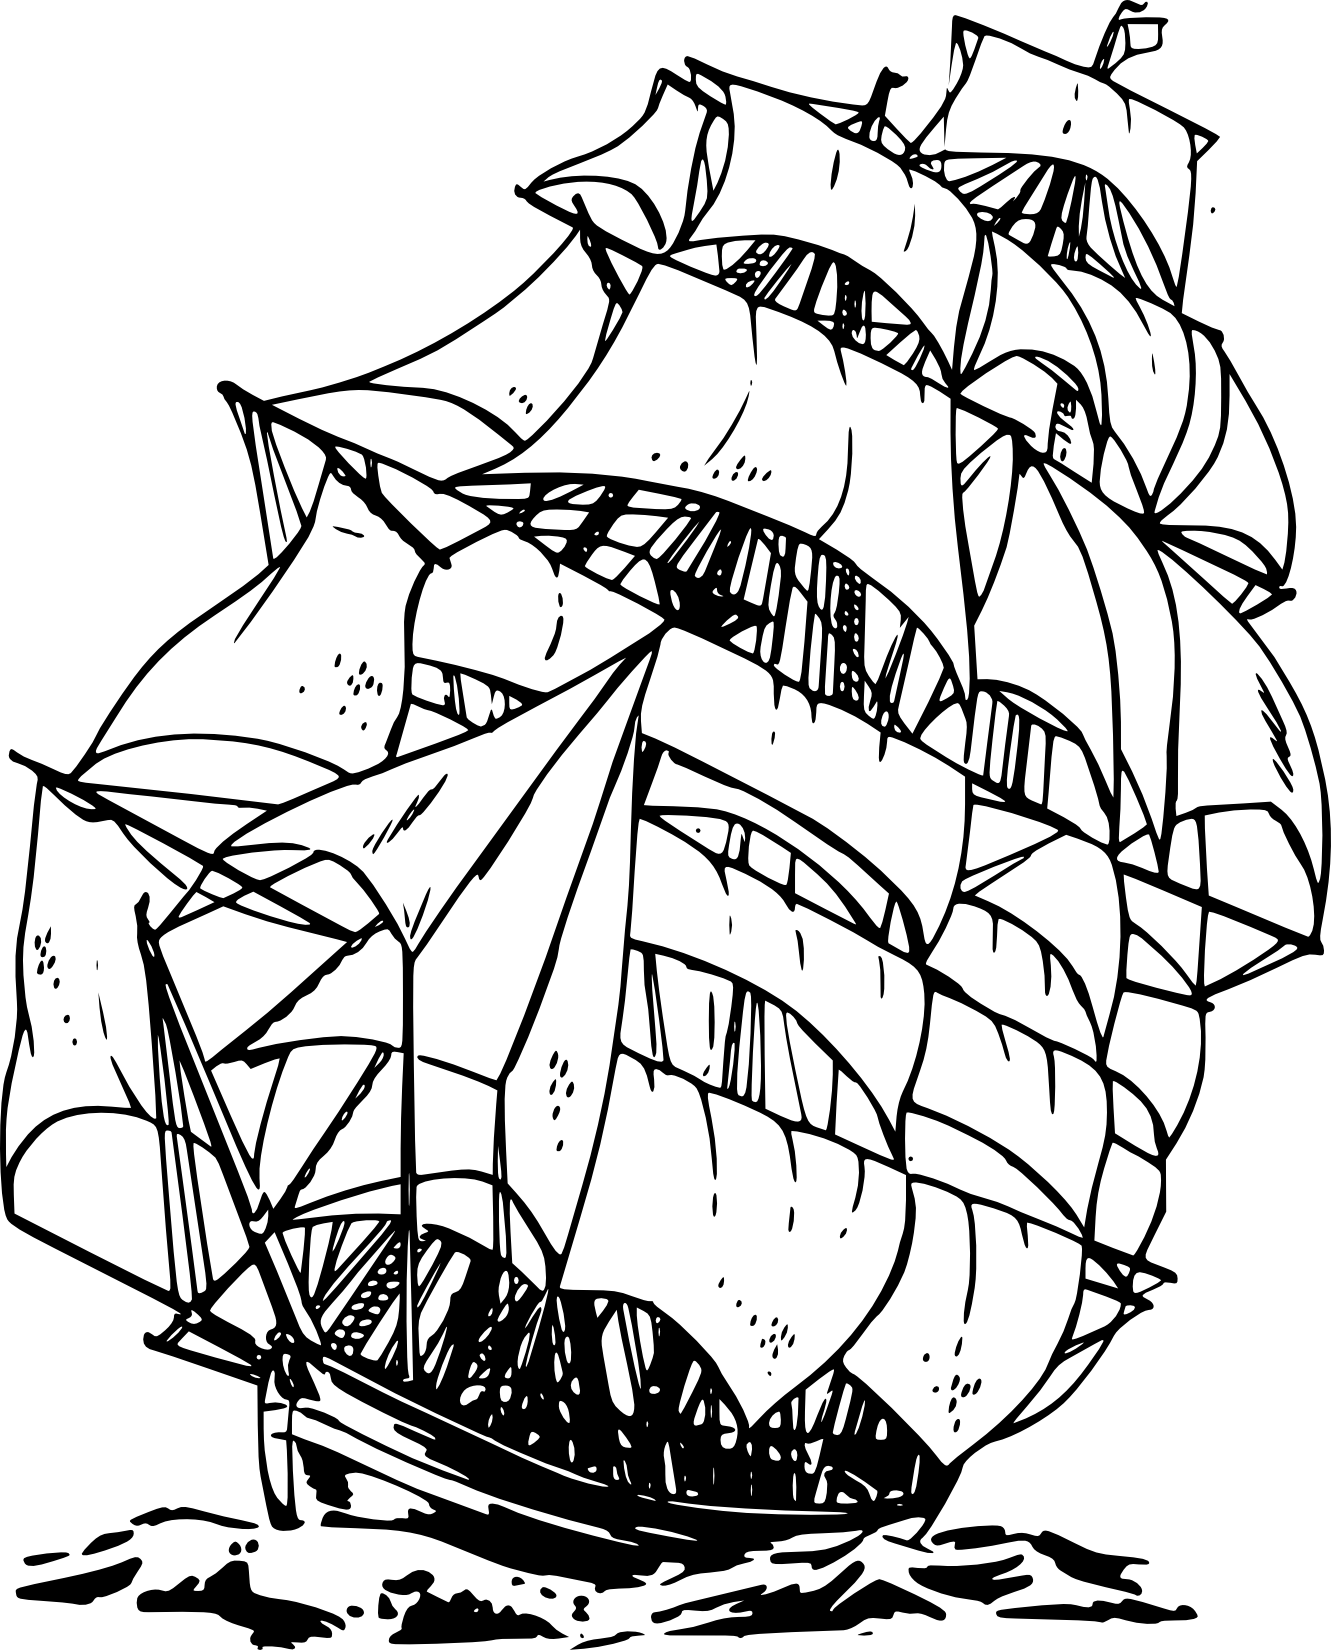 Line Art Images Free : Pirate ship clipart black and white panda free